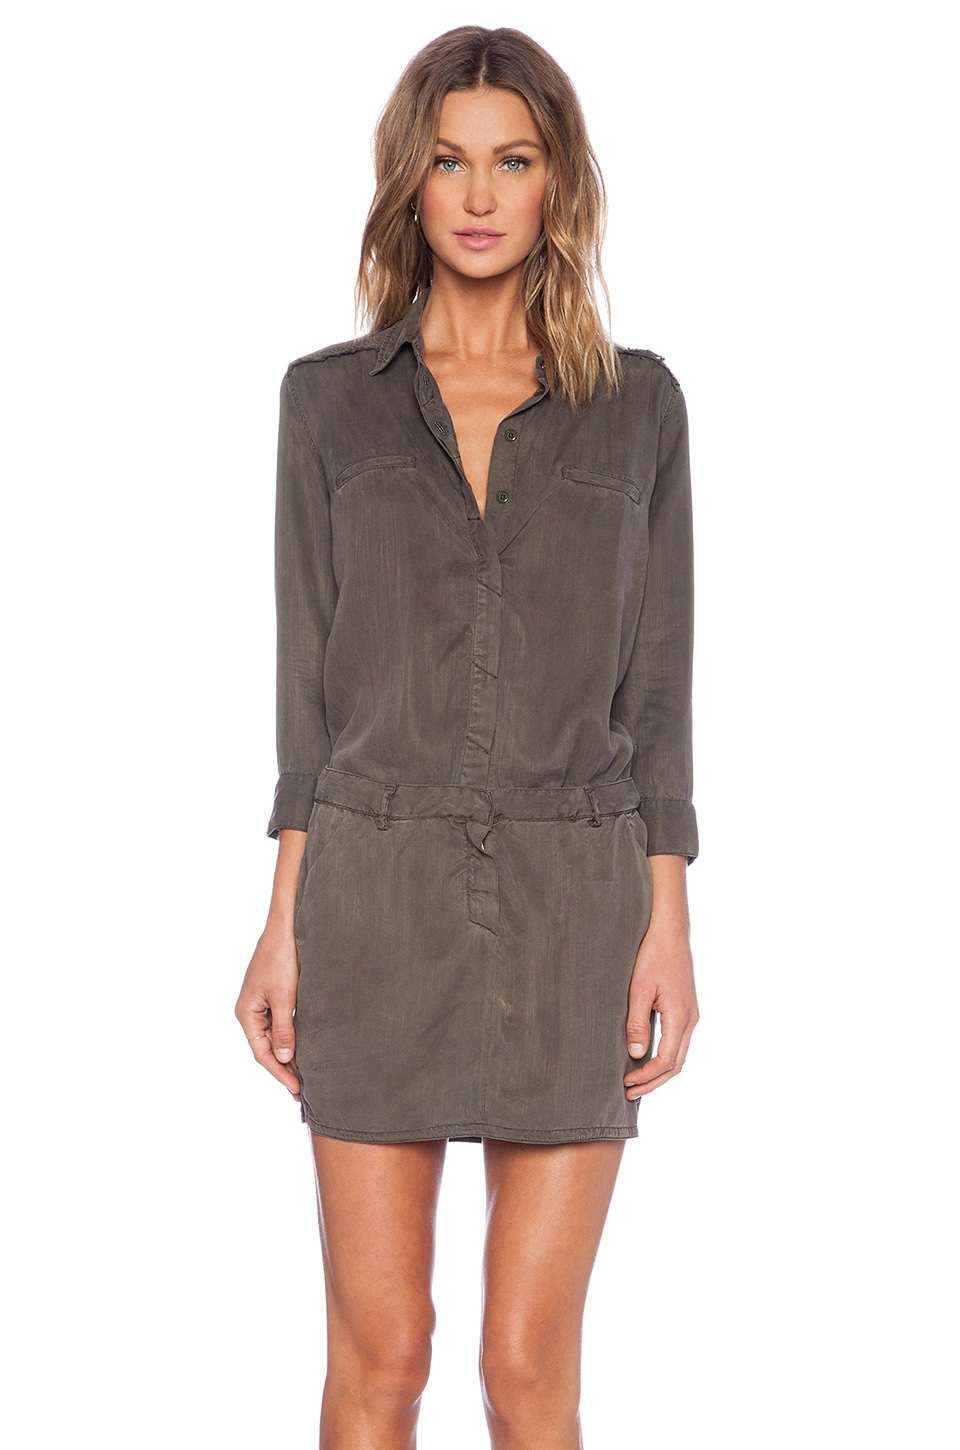 Etienne Marcel Long Sleeve Dress in Military